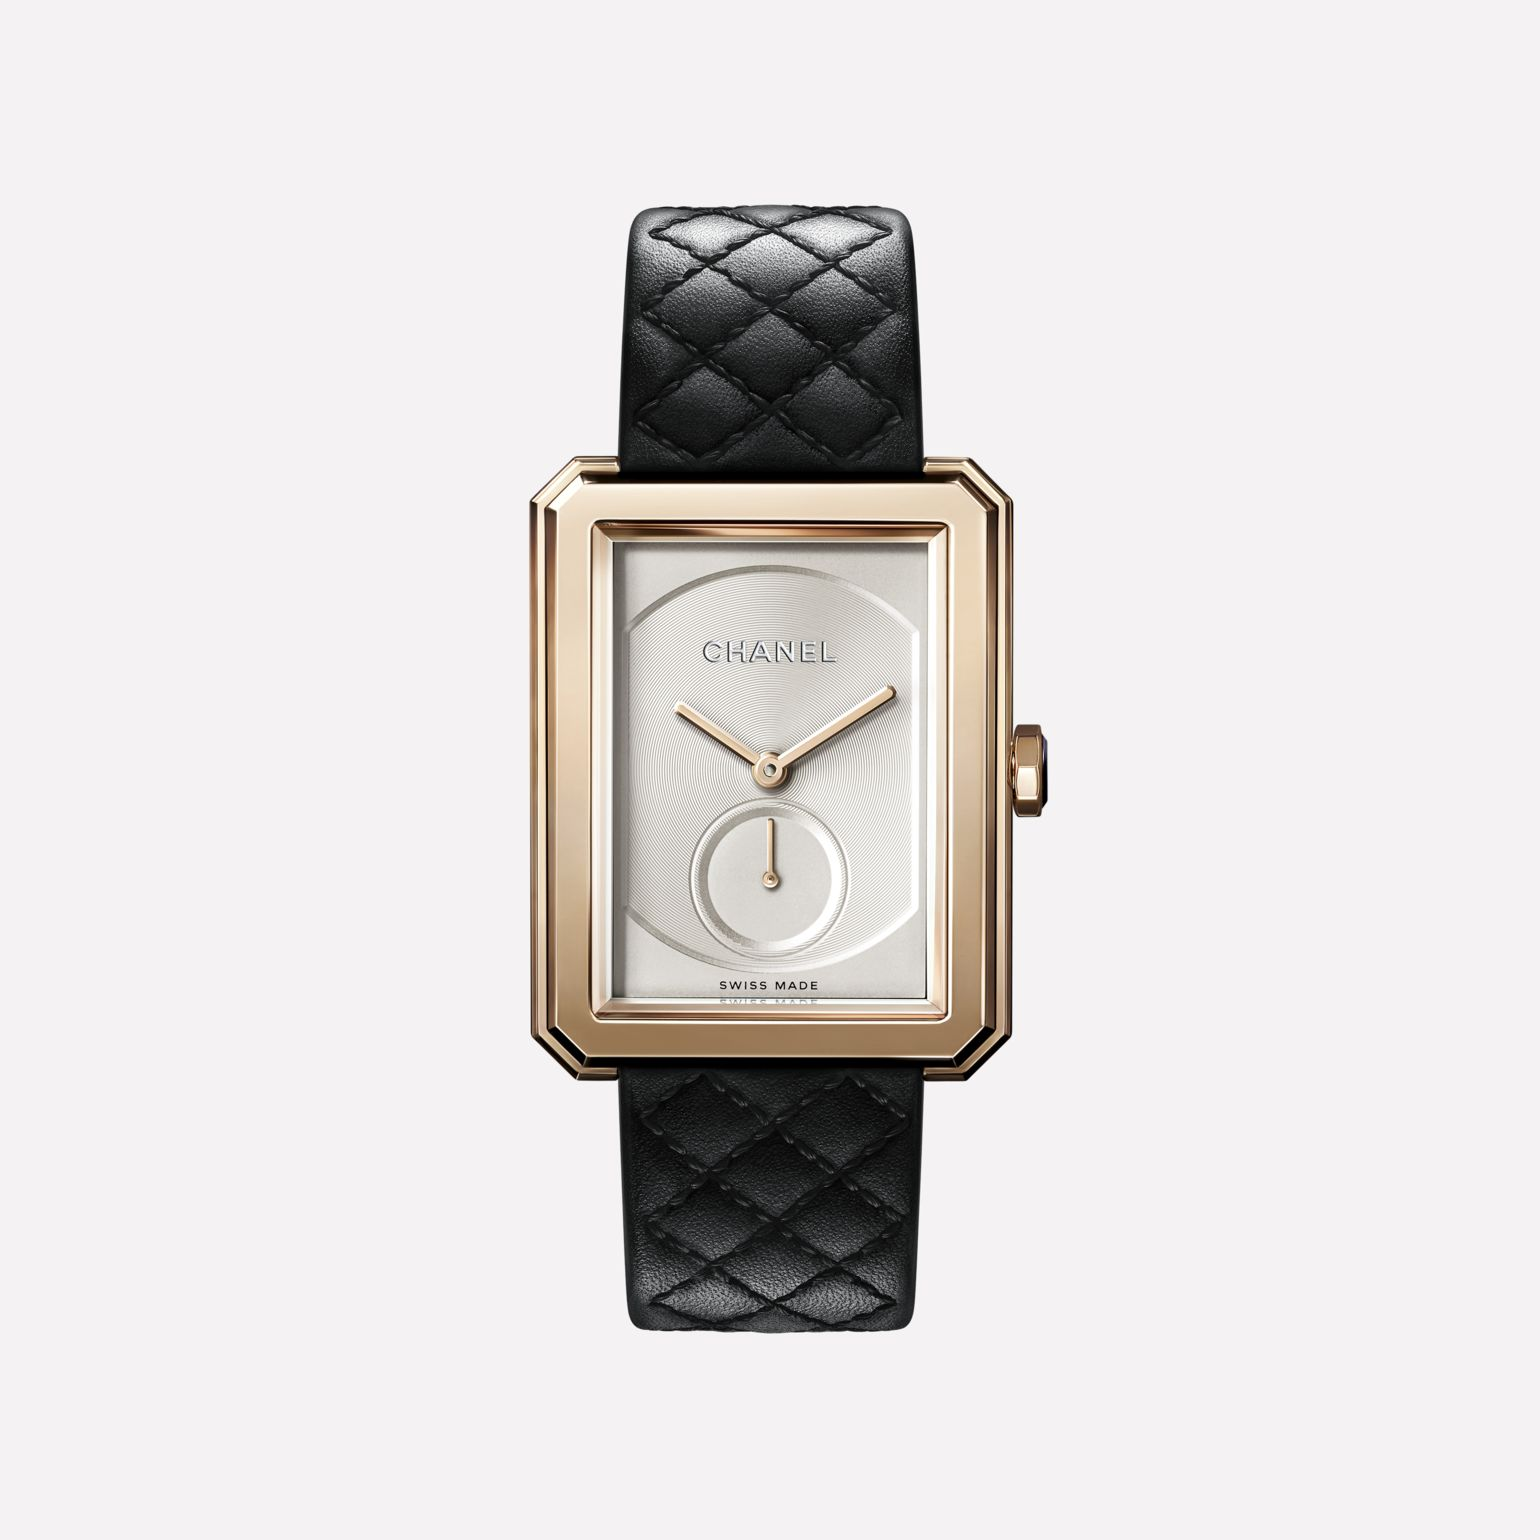 BOY·FRIEND Watch Large version, BEIGE GOLD and quilted pattern calfskin strap